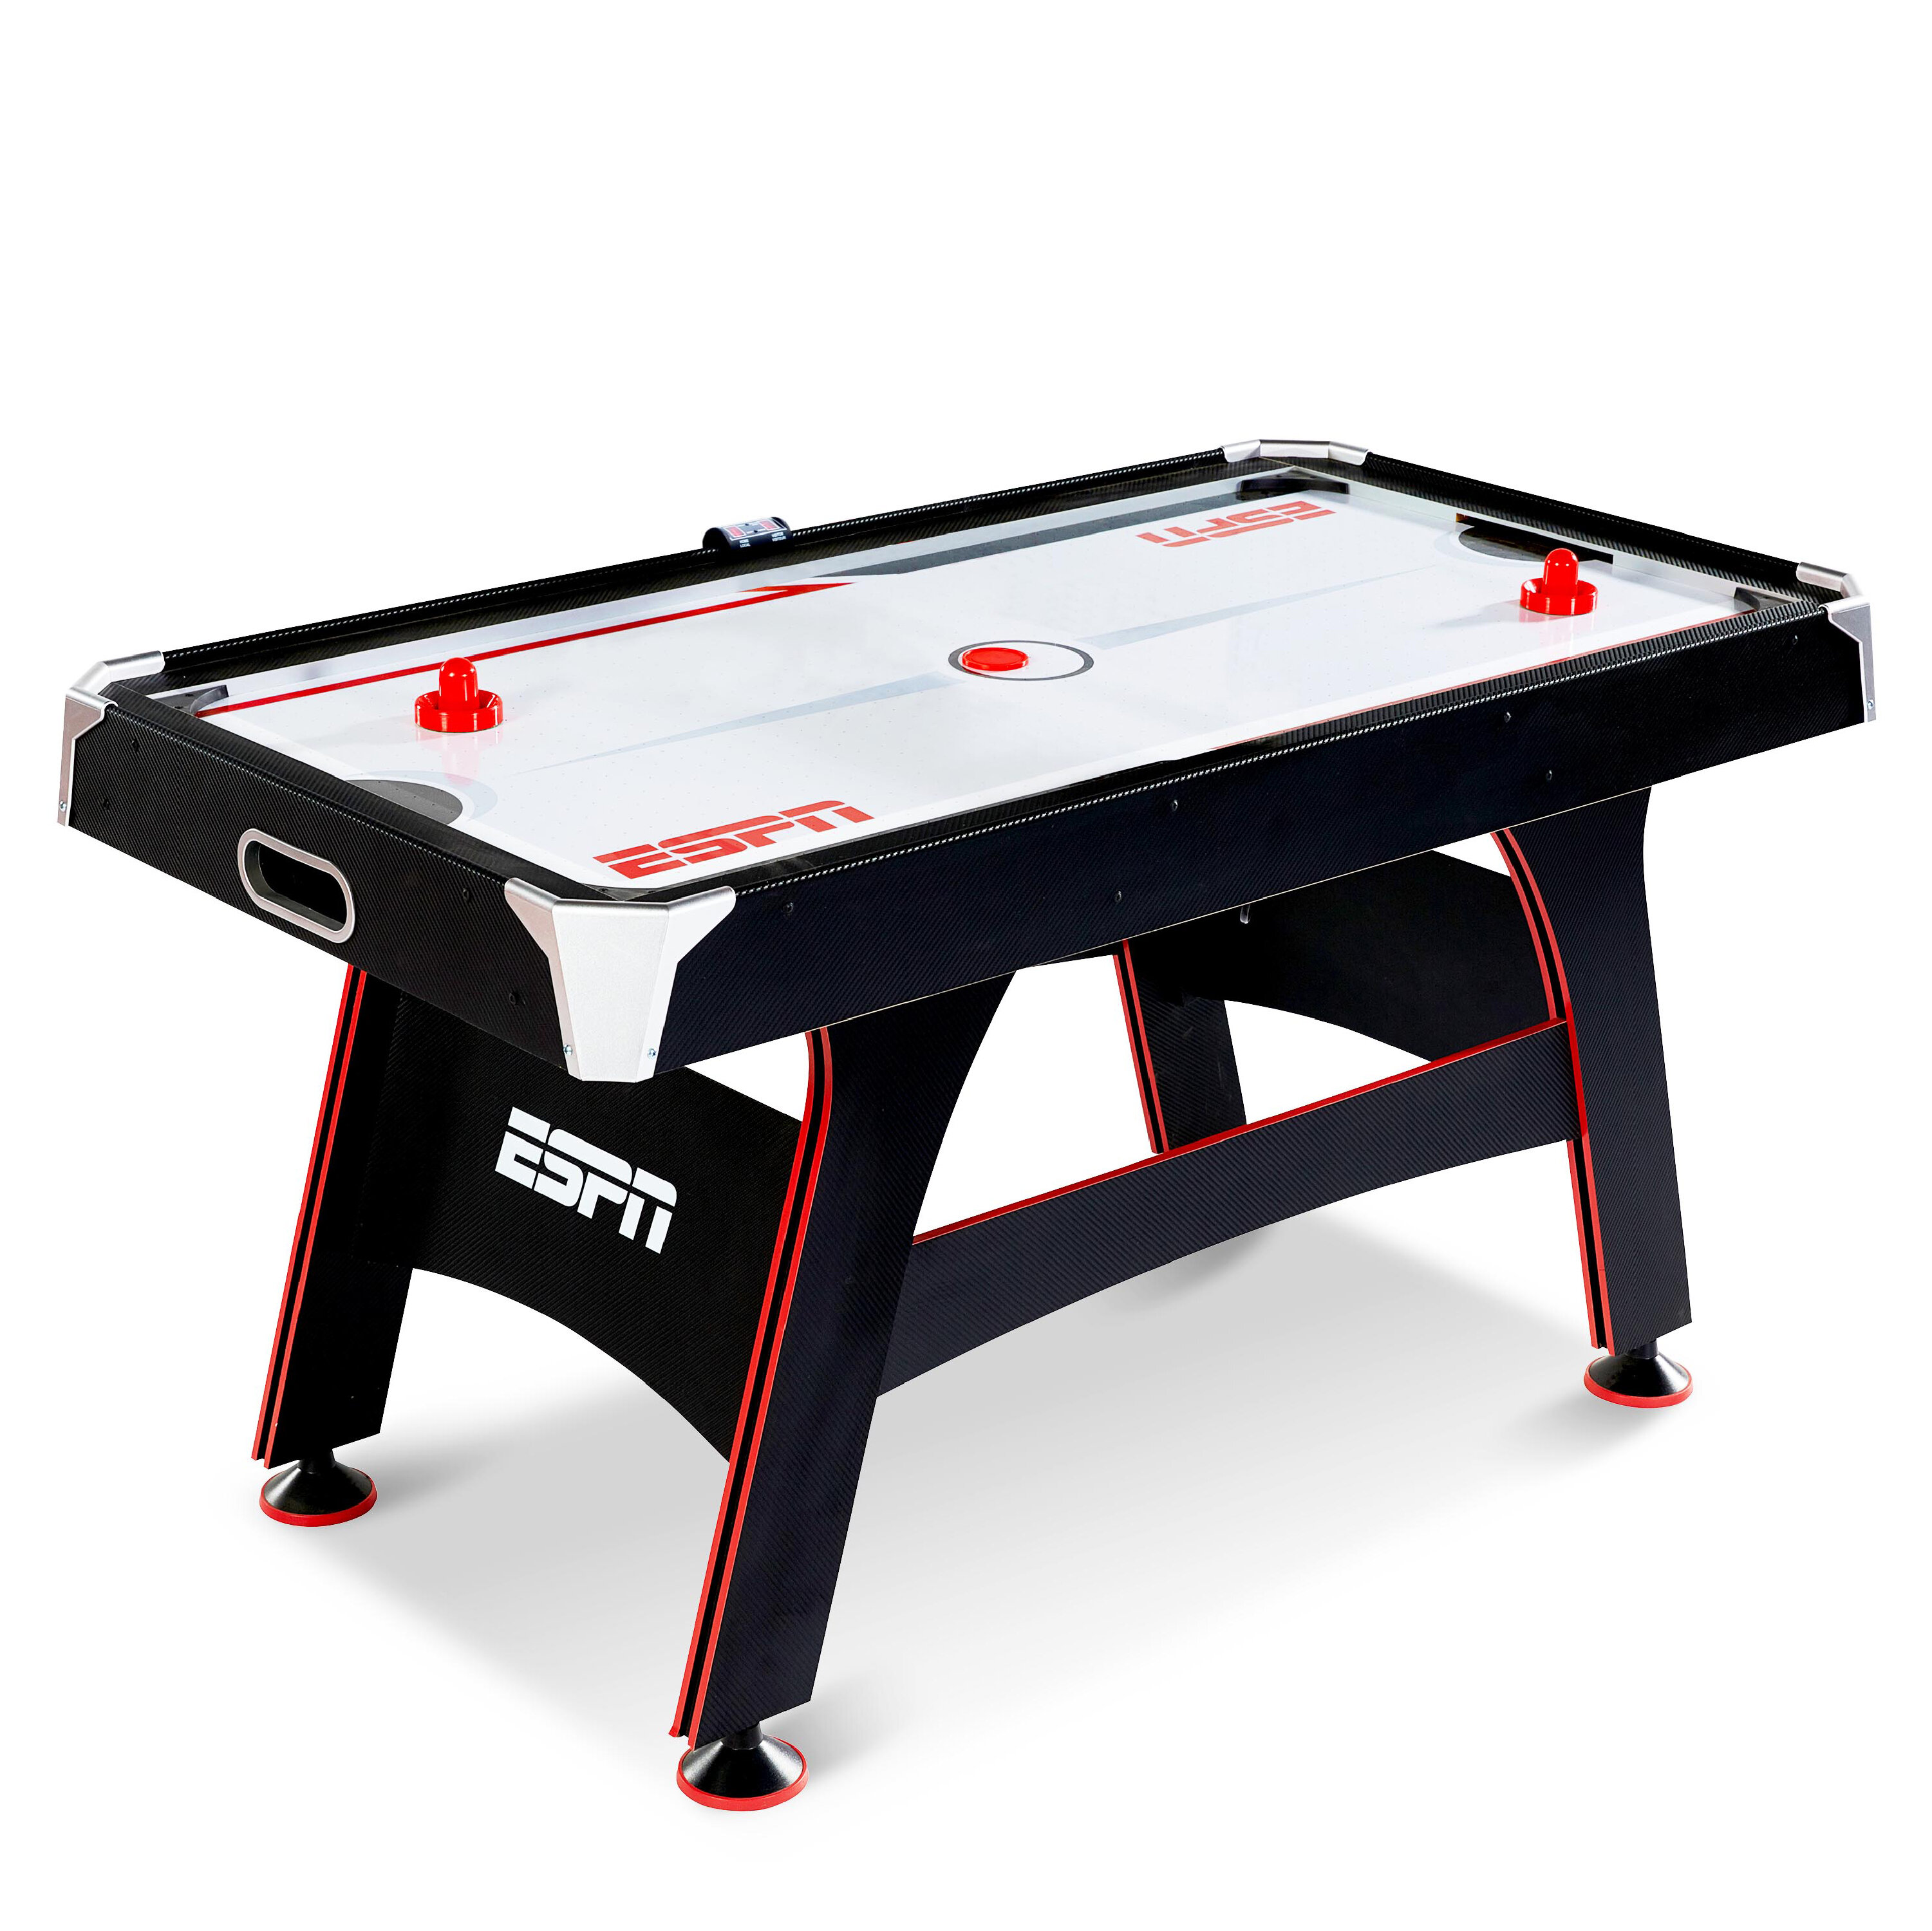 Air Hockey Lovely Air Hockey Table 48 Inch Powered Electronic Indoor Game Room Kids Funny Play